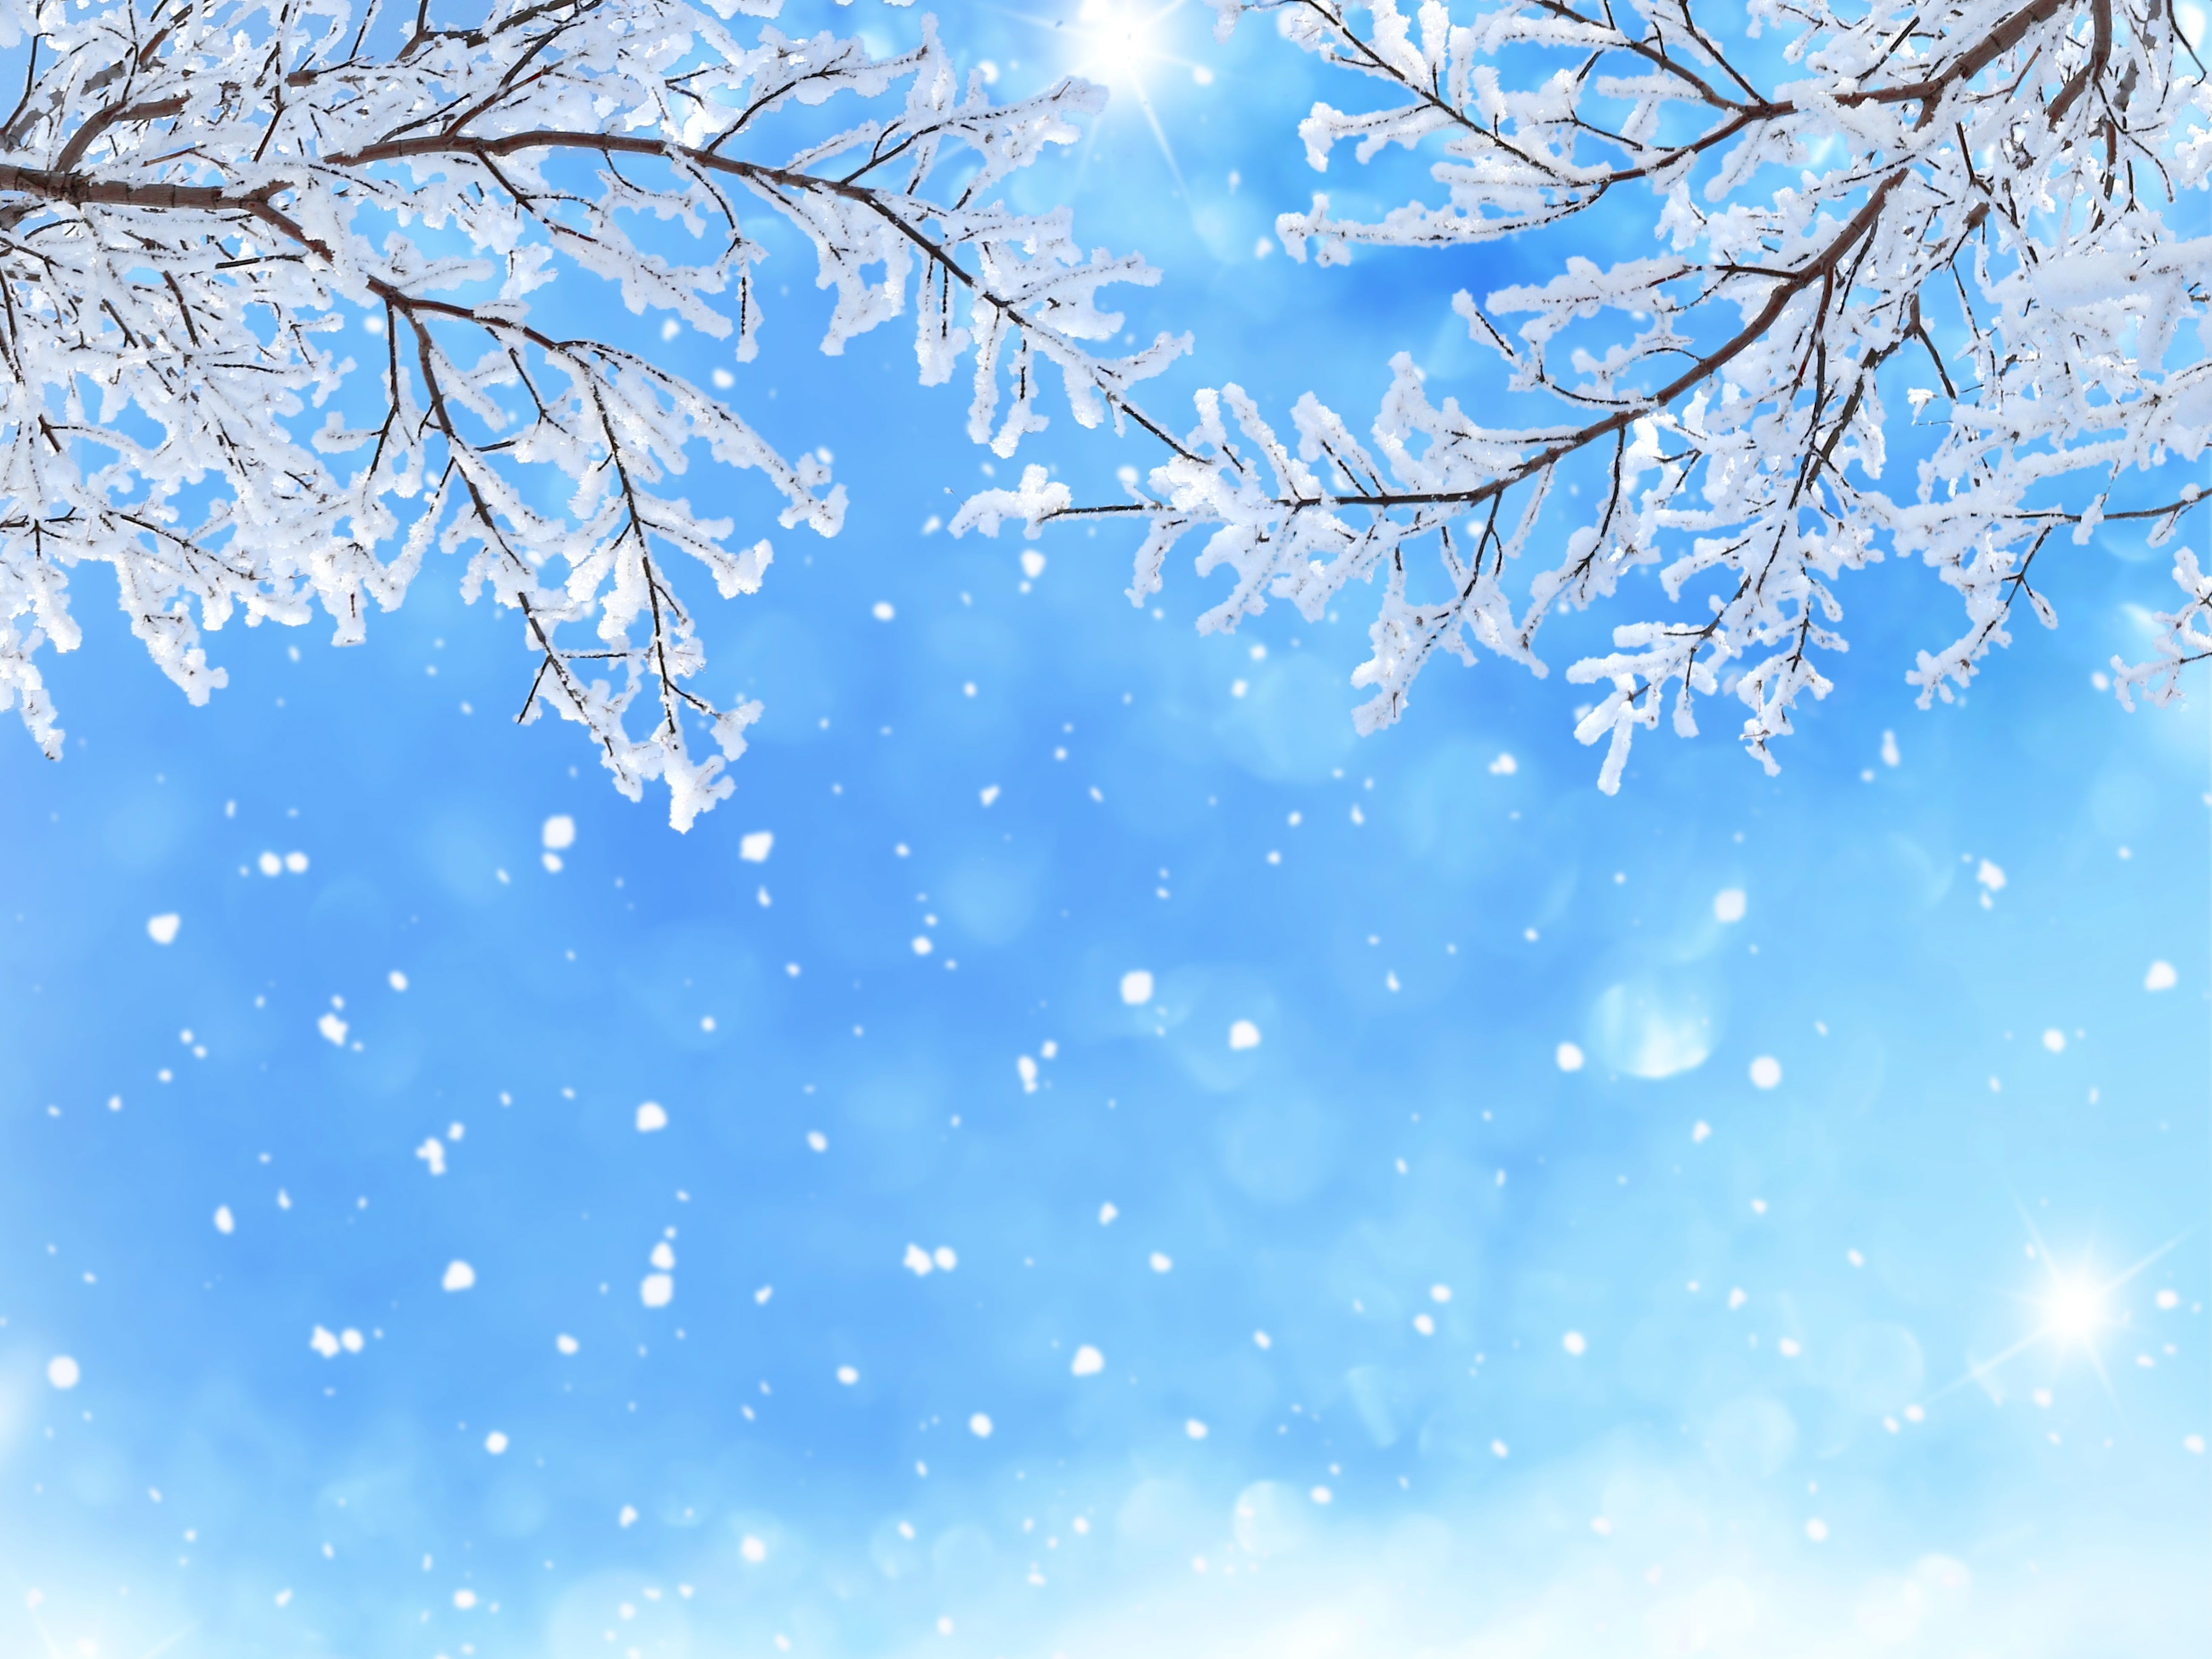 Branches Winter Snow 5k Snowfall 5k Wallpaper Hdwallpaper Desktop Winter Wallpaper Winter Snow Wallpaper Iphone Wallpaper Winter Hd wallpaper snow winter nature branches